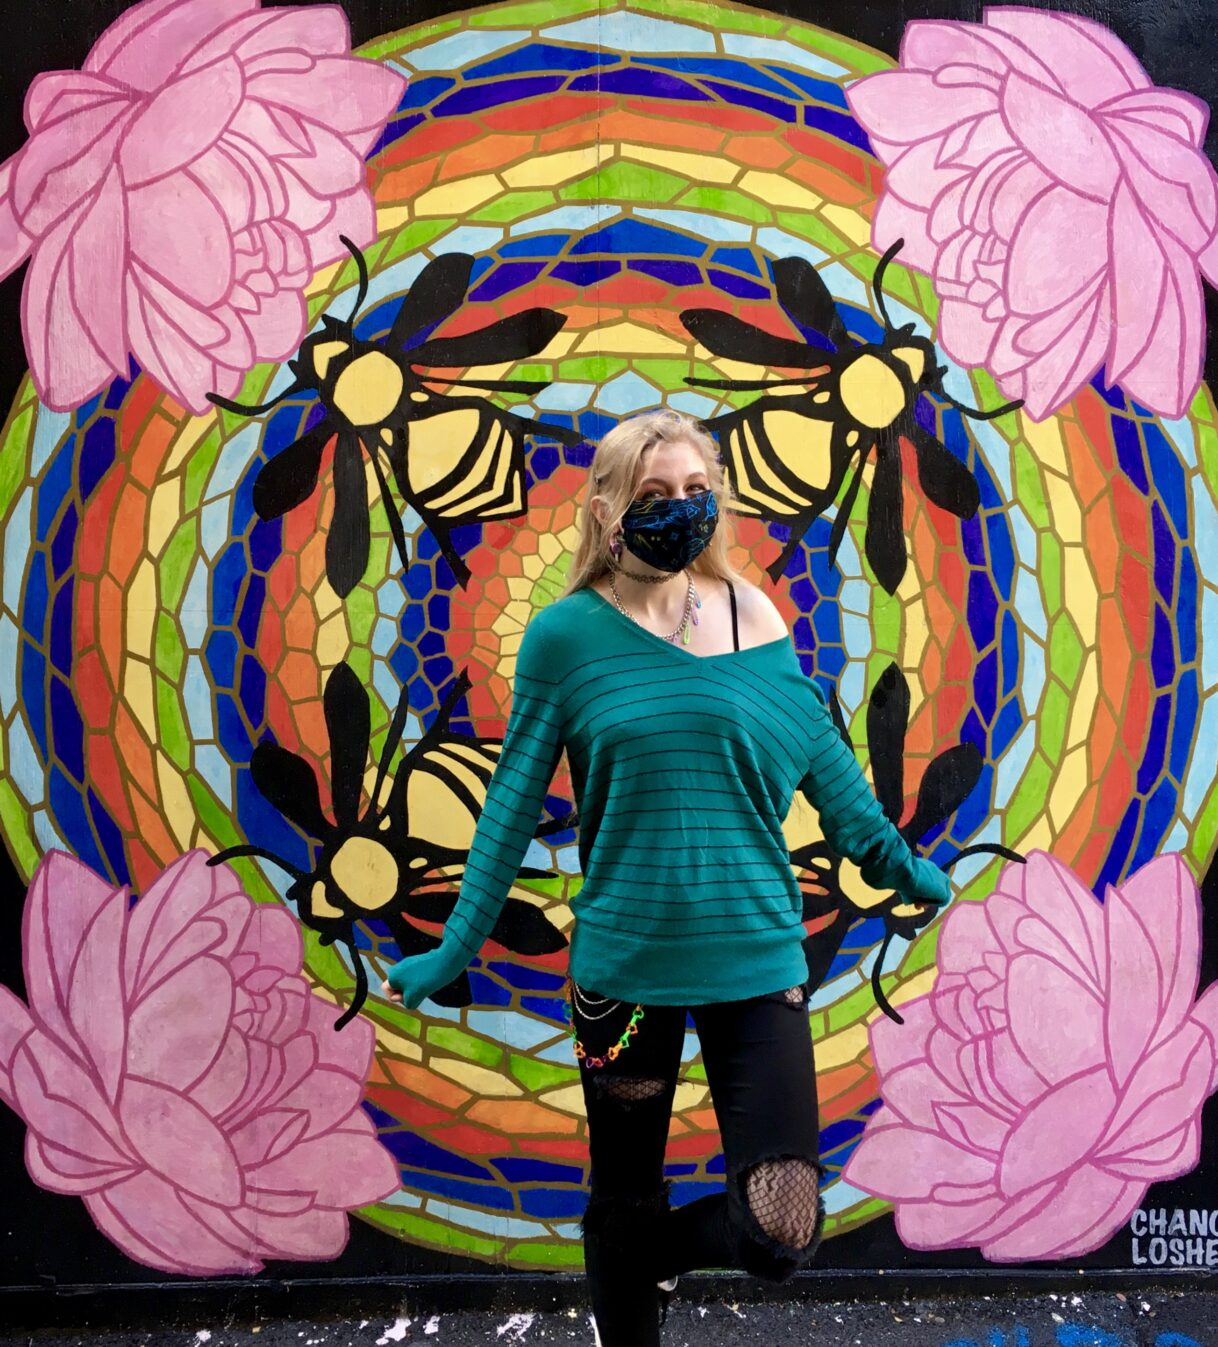 Save the Bees Rainbow Mandala by Chance Losher aka Professor Rainbow – Strong Alley – Knoxville, Tennessee – 10/29/2020